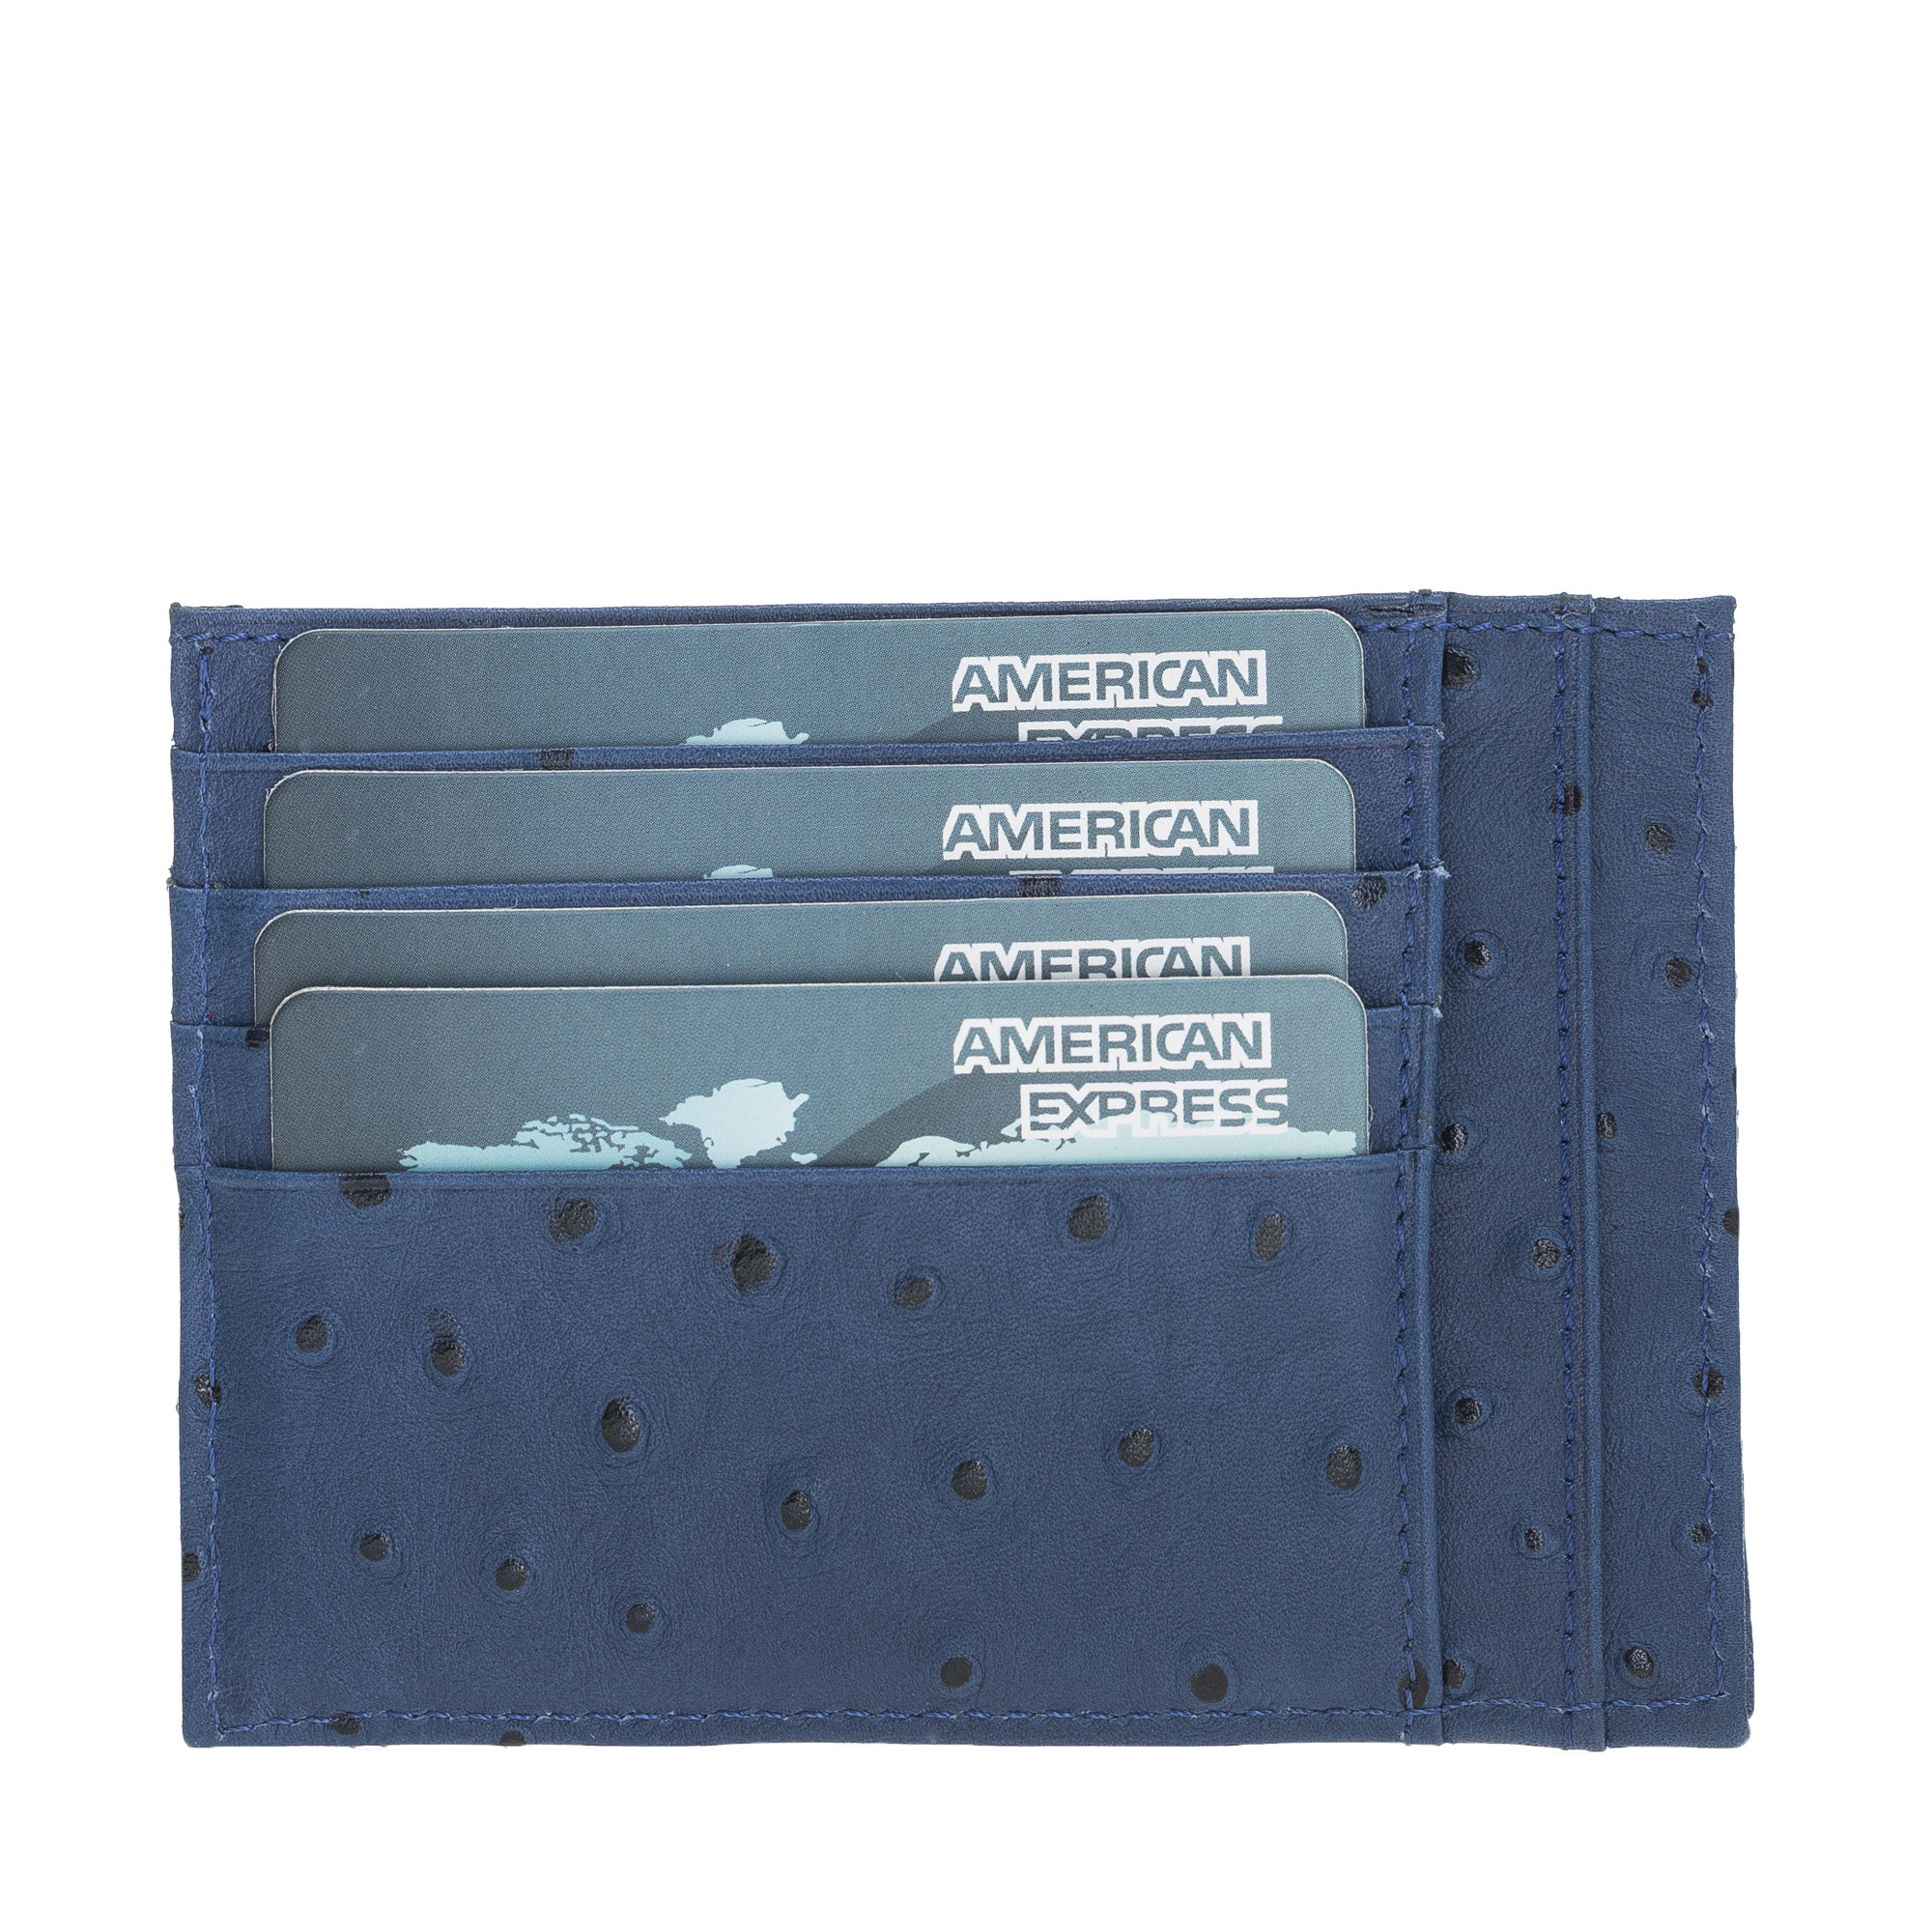 Ostrich Patterned High Quality Genuine Leather  Zip Card Holder